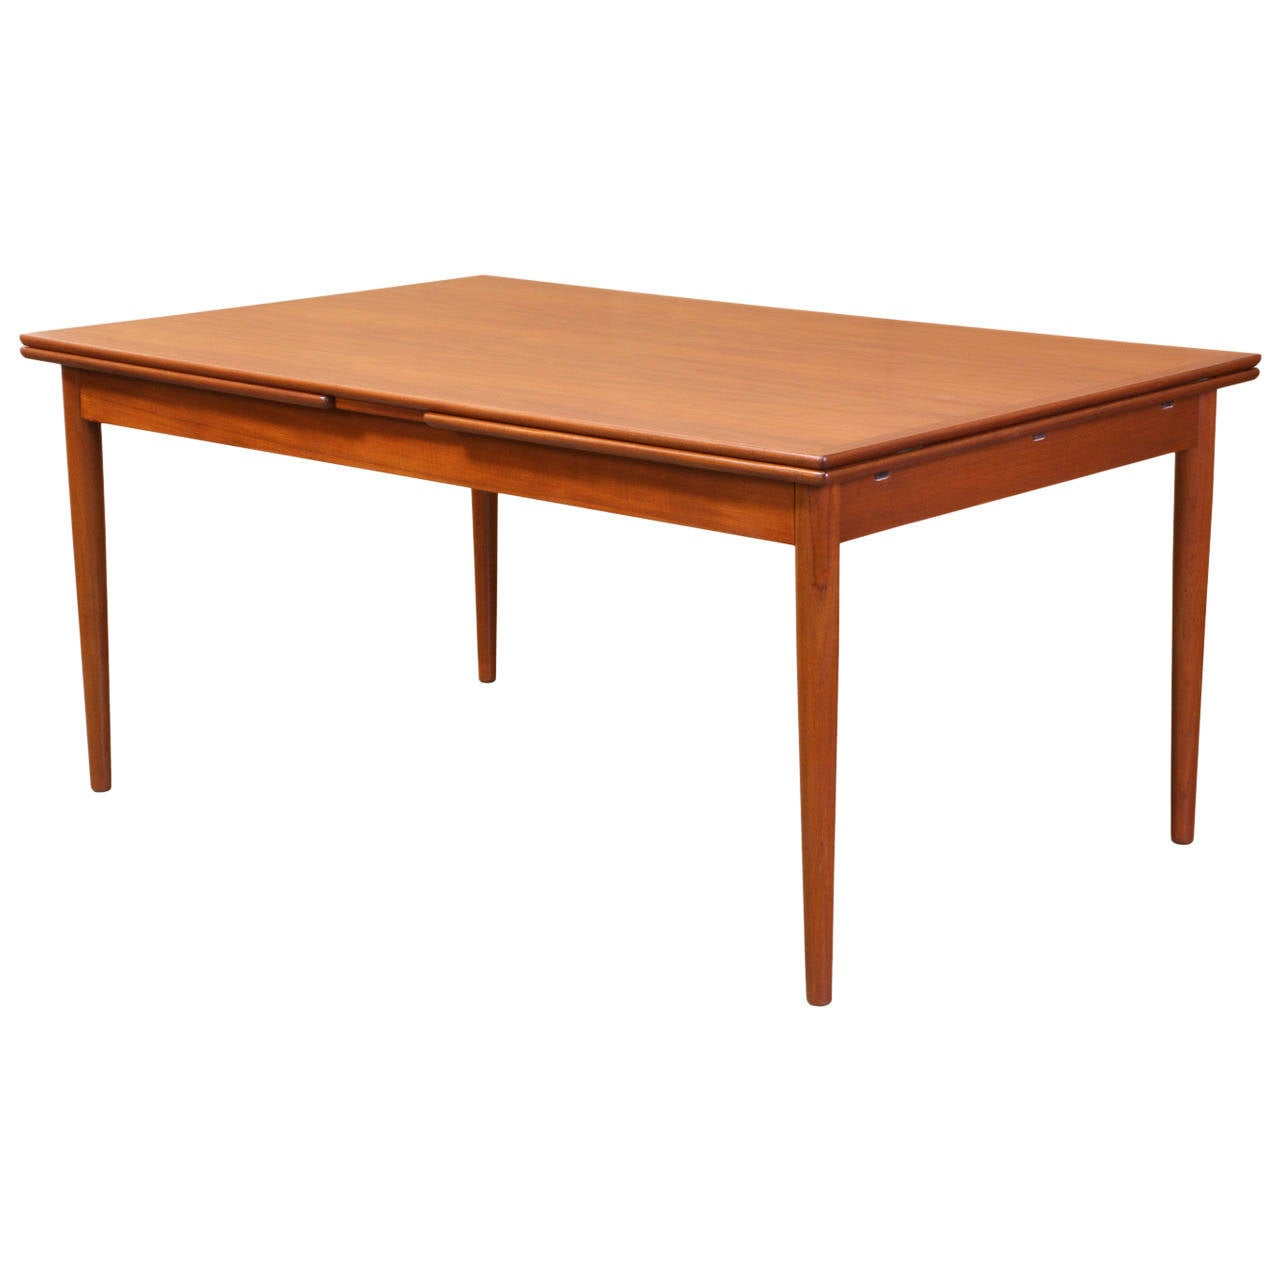 Danish modern teak draw leaf dining table at 1stdibs for Danish modern dining room table